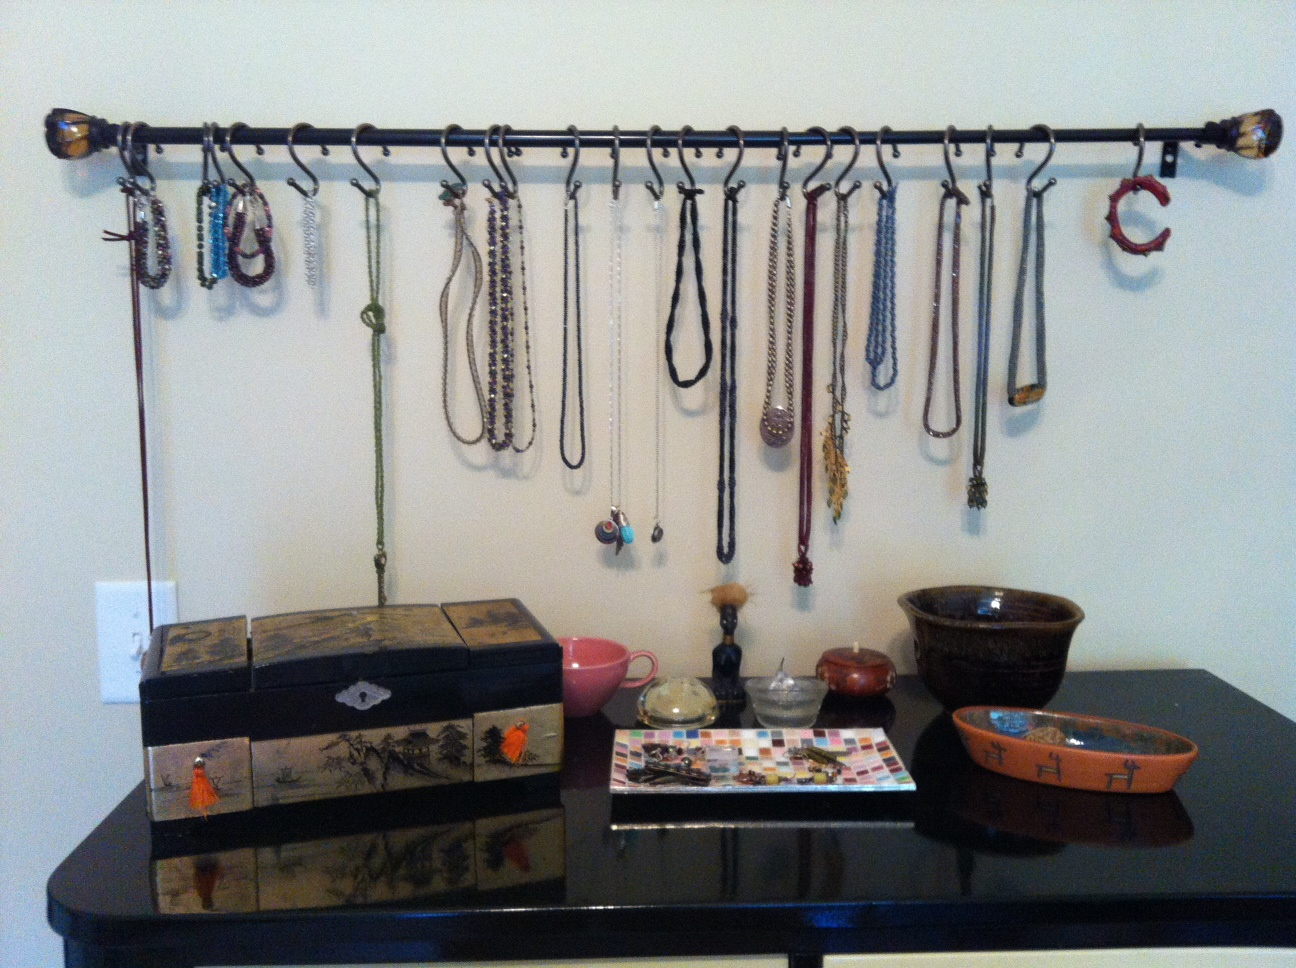 Clever Jewelry Display and Storage!